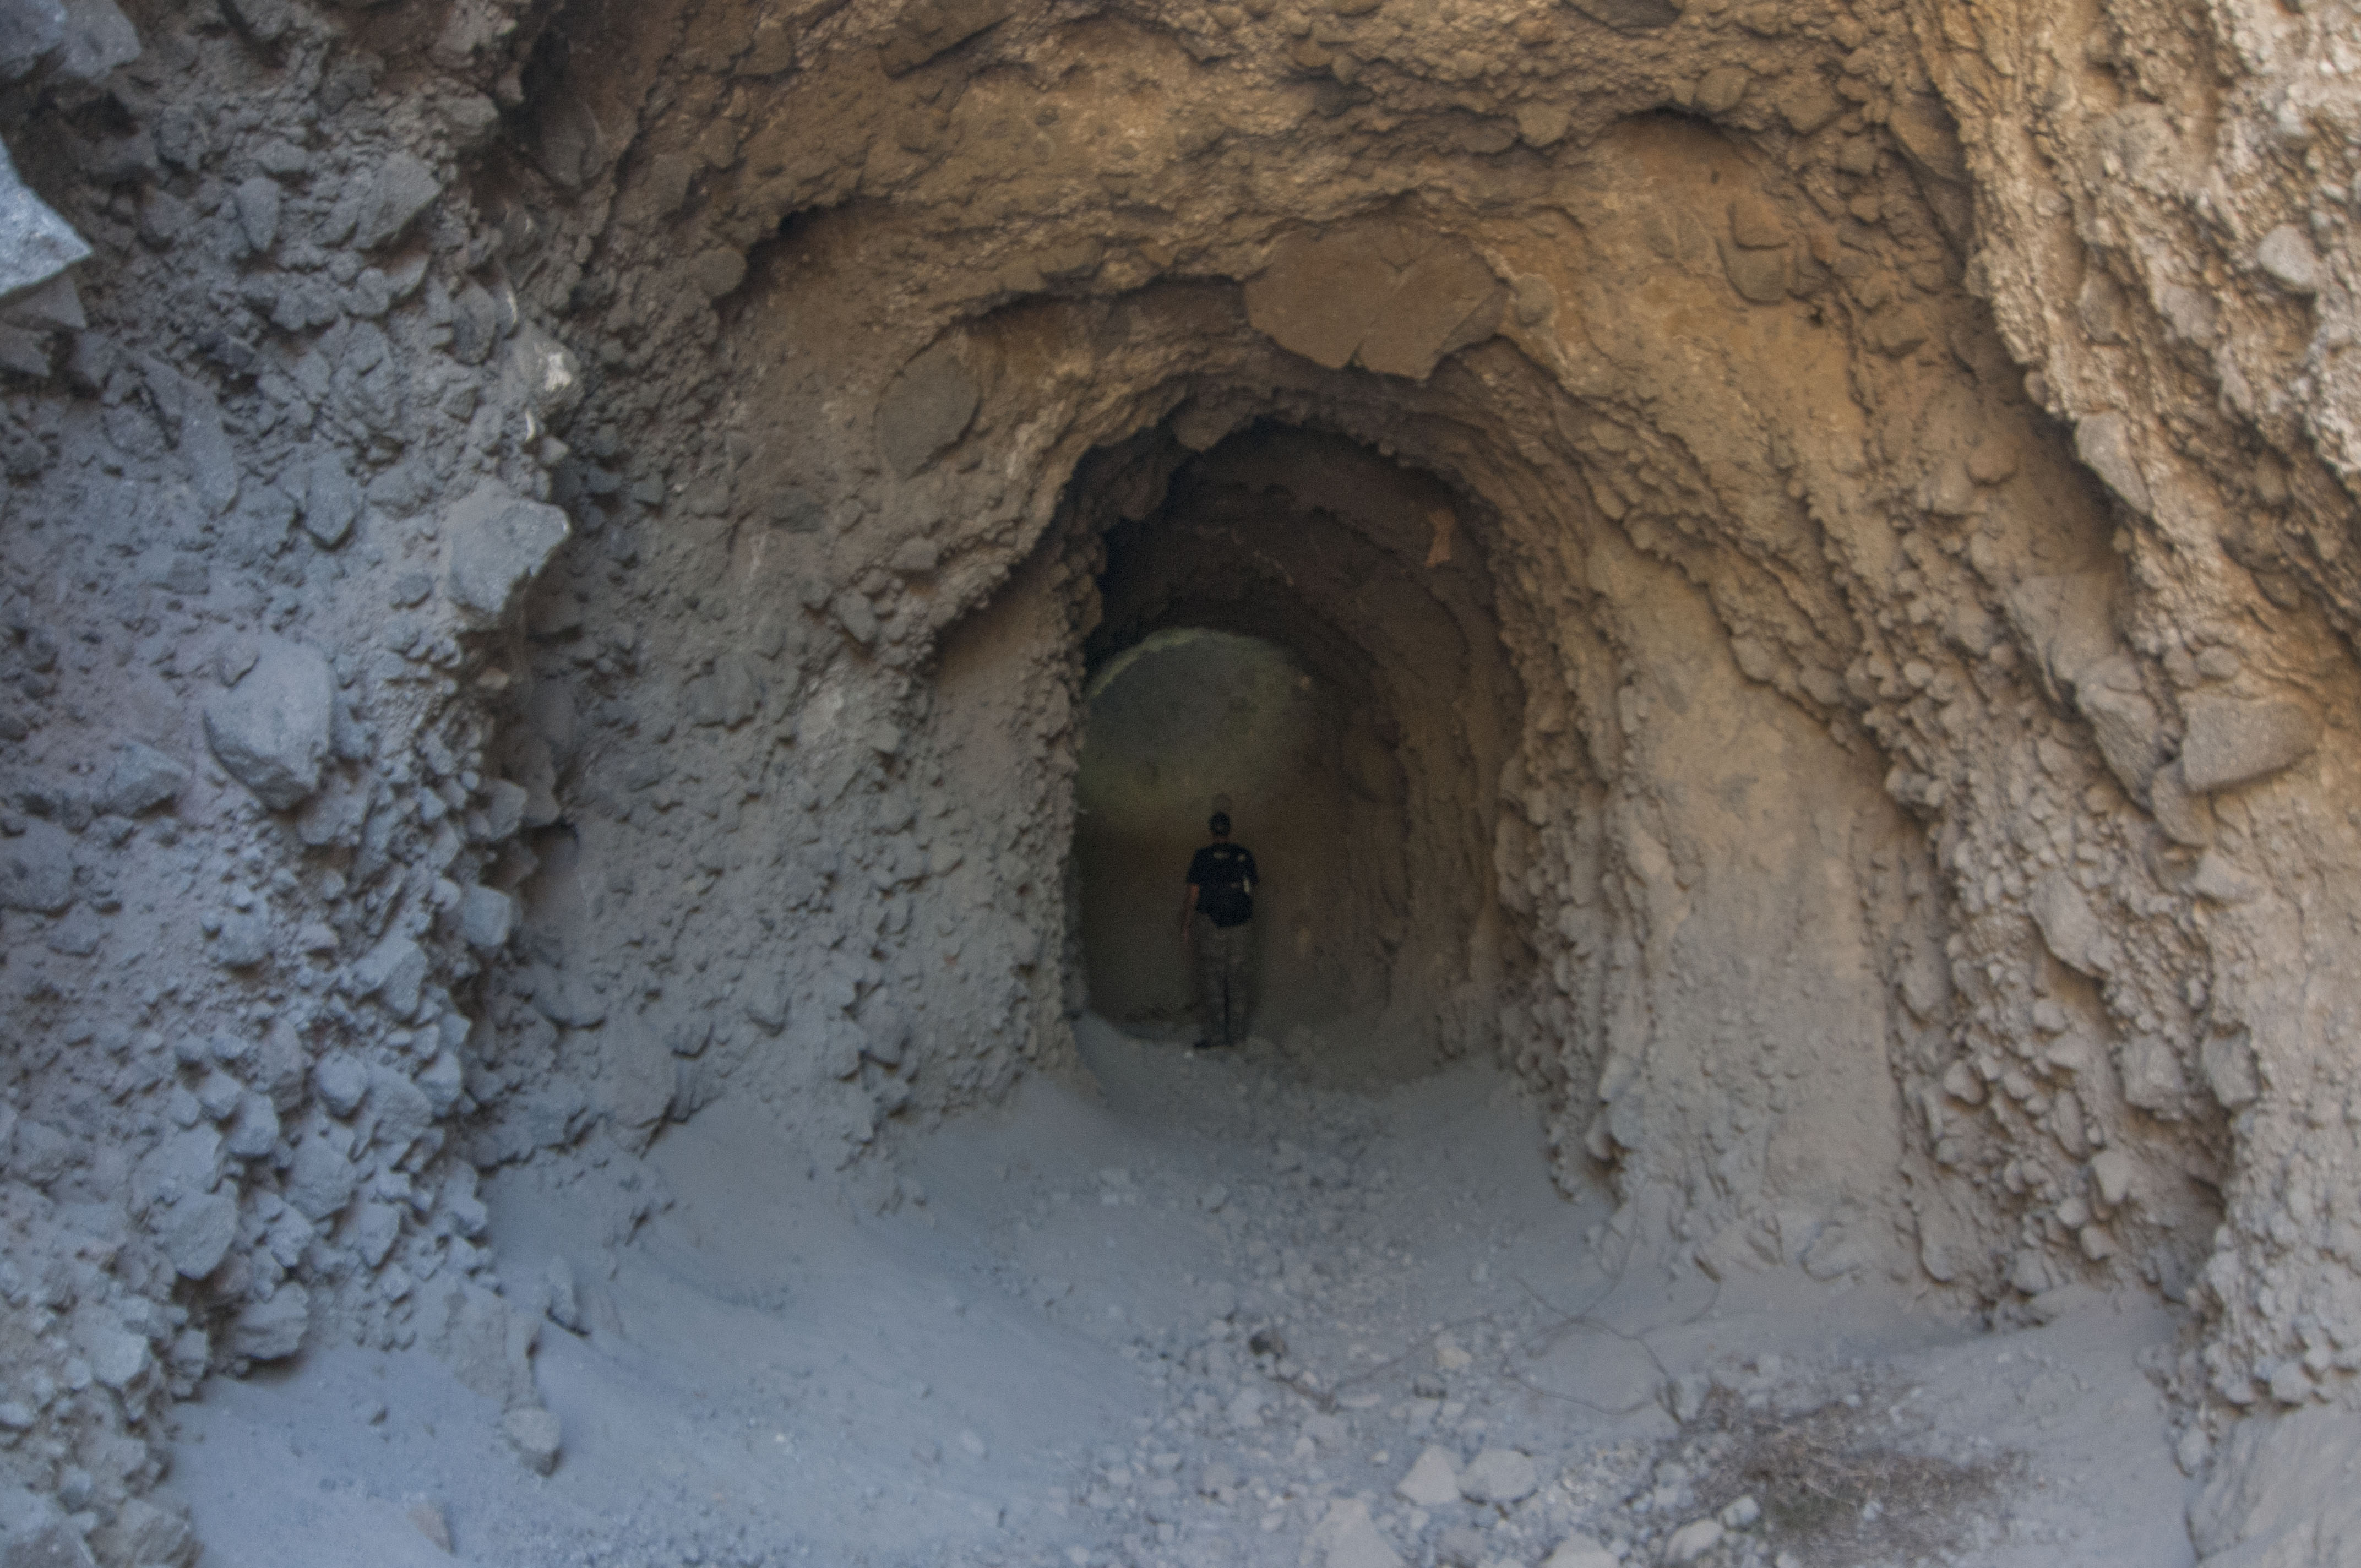 The carved tunnel, with a height of approx. 4 metres.